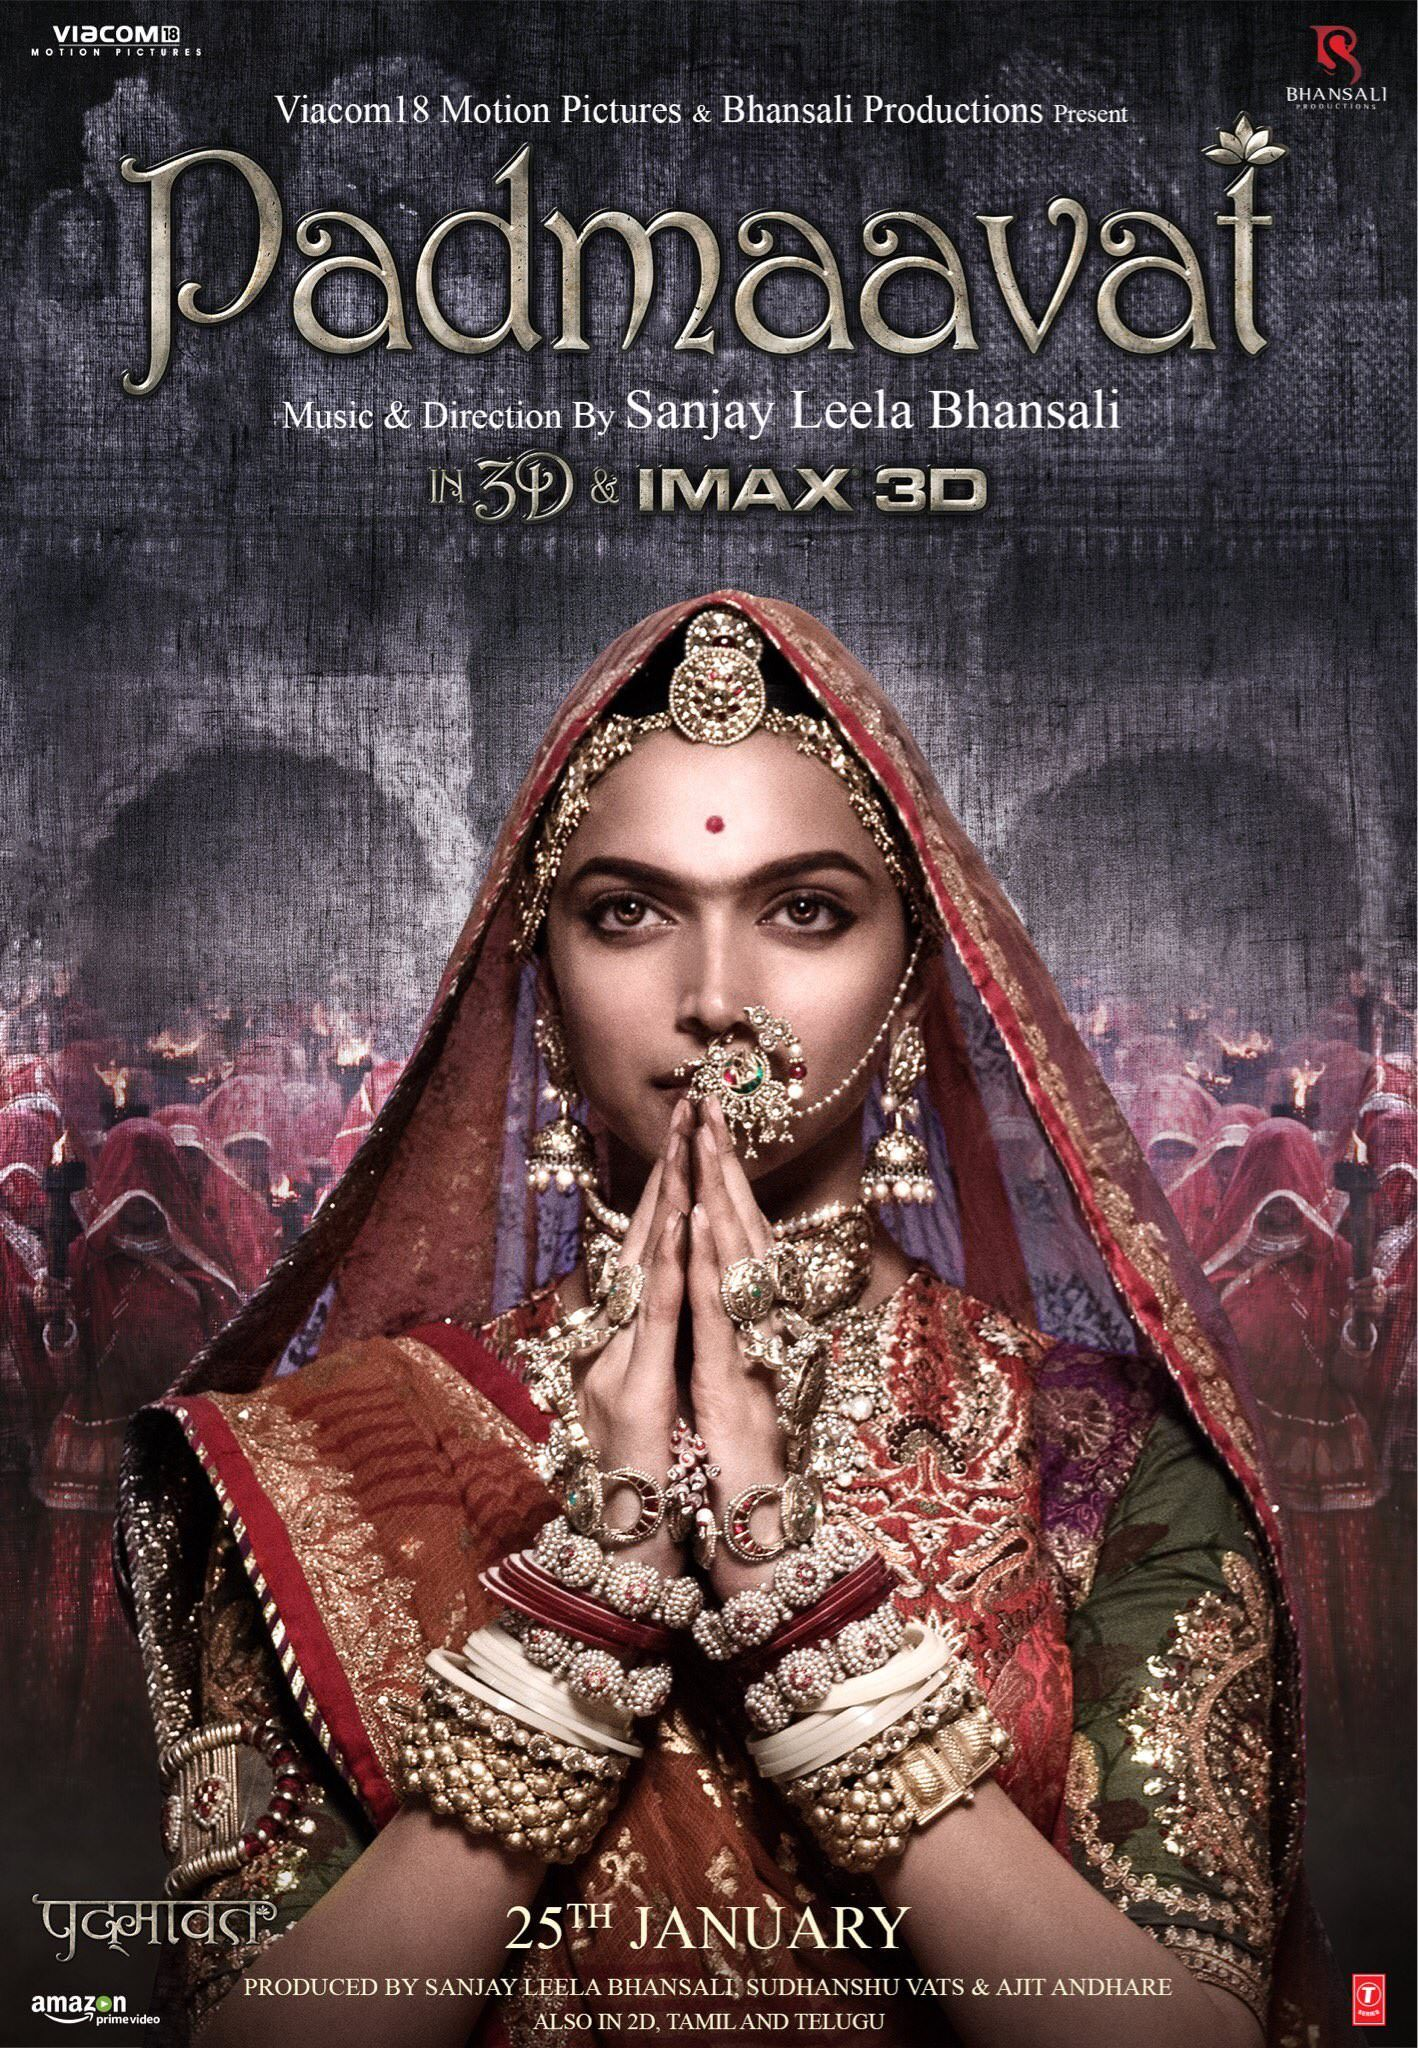 padmavat 2018 hindi movie free download full hd bluray camrip dvdscr